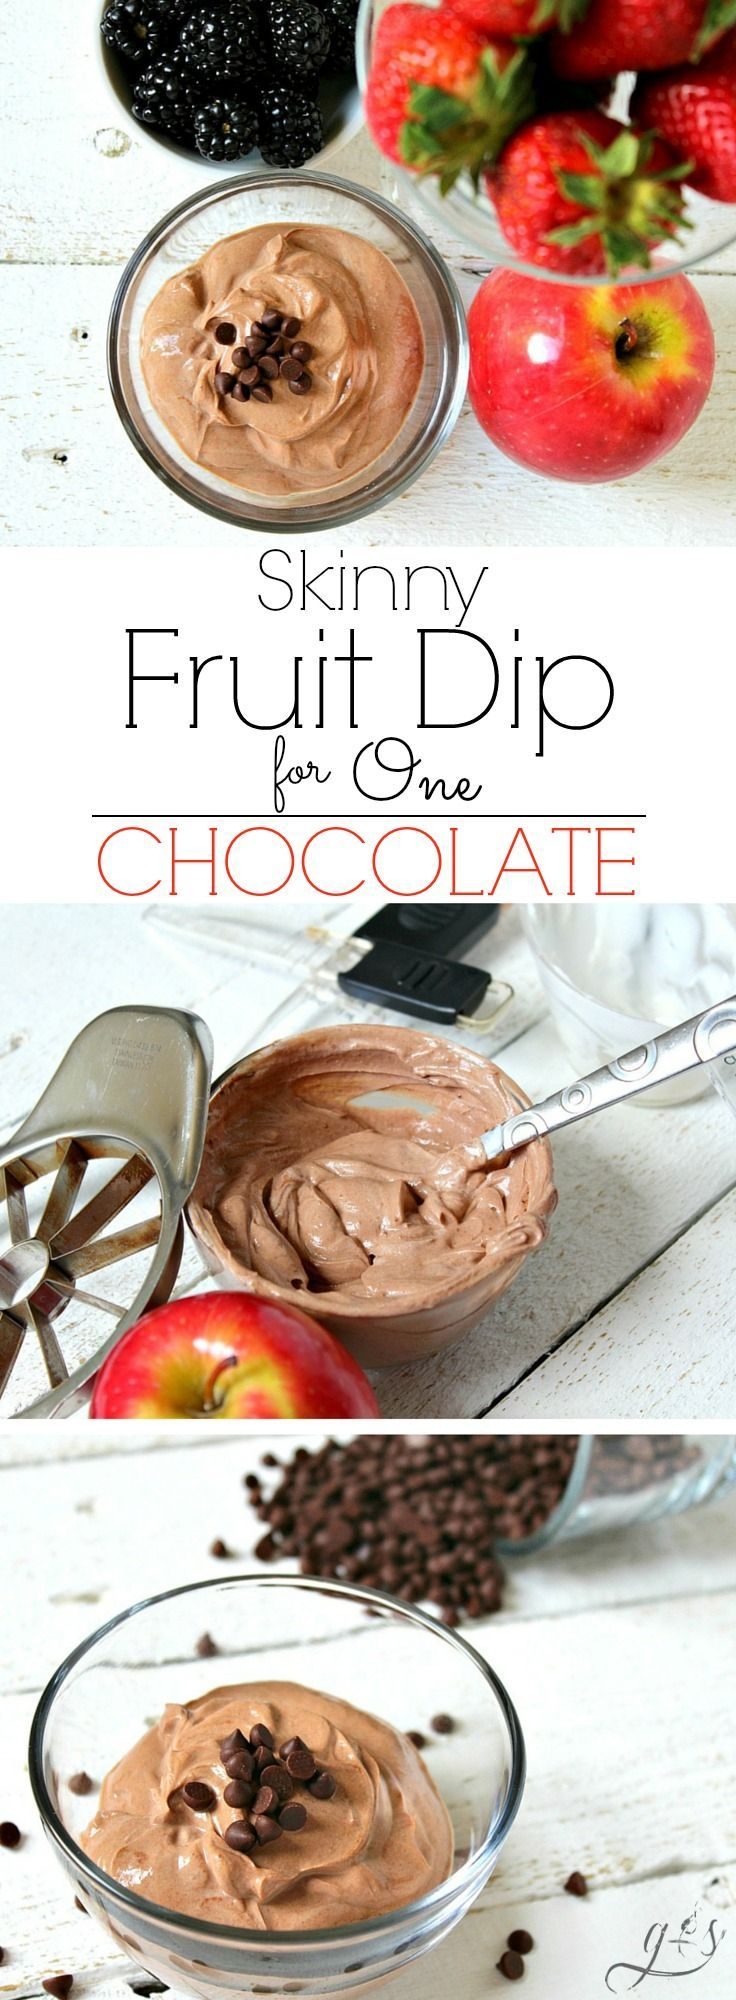 The BEST Skinny Chocolate Fruit Dip for One | A healthy, high protein dip recipe made with plain Greek yogurt and other clean eating ingredients! This easy and low carb chocolate dip will quickly become your favorite snack! It's perfect for dipping fruit like apples or strawberries.